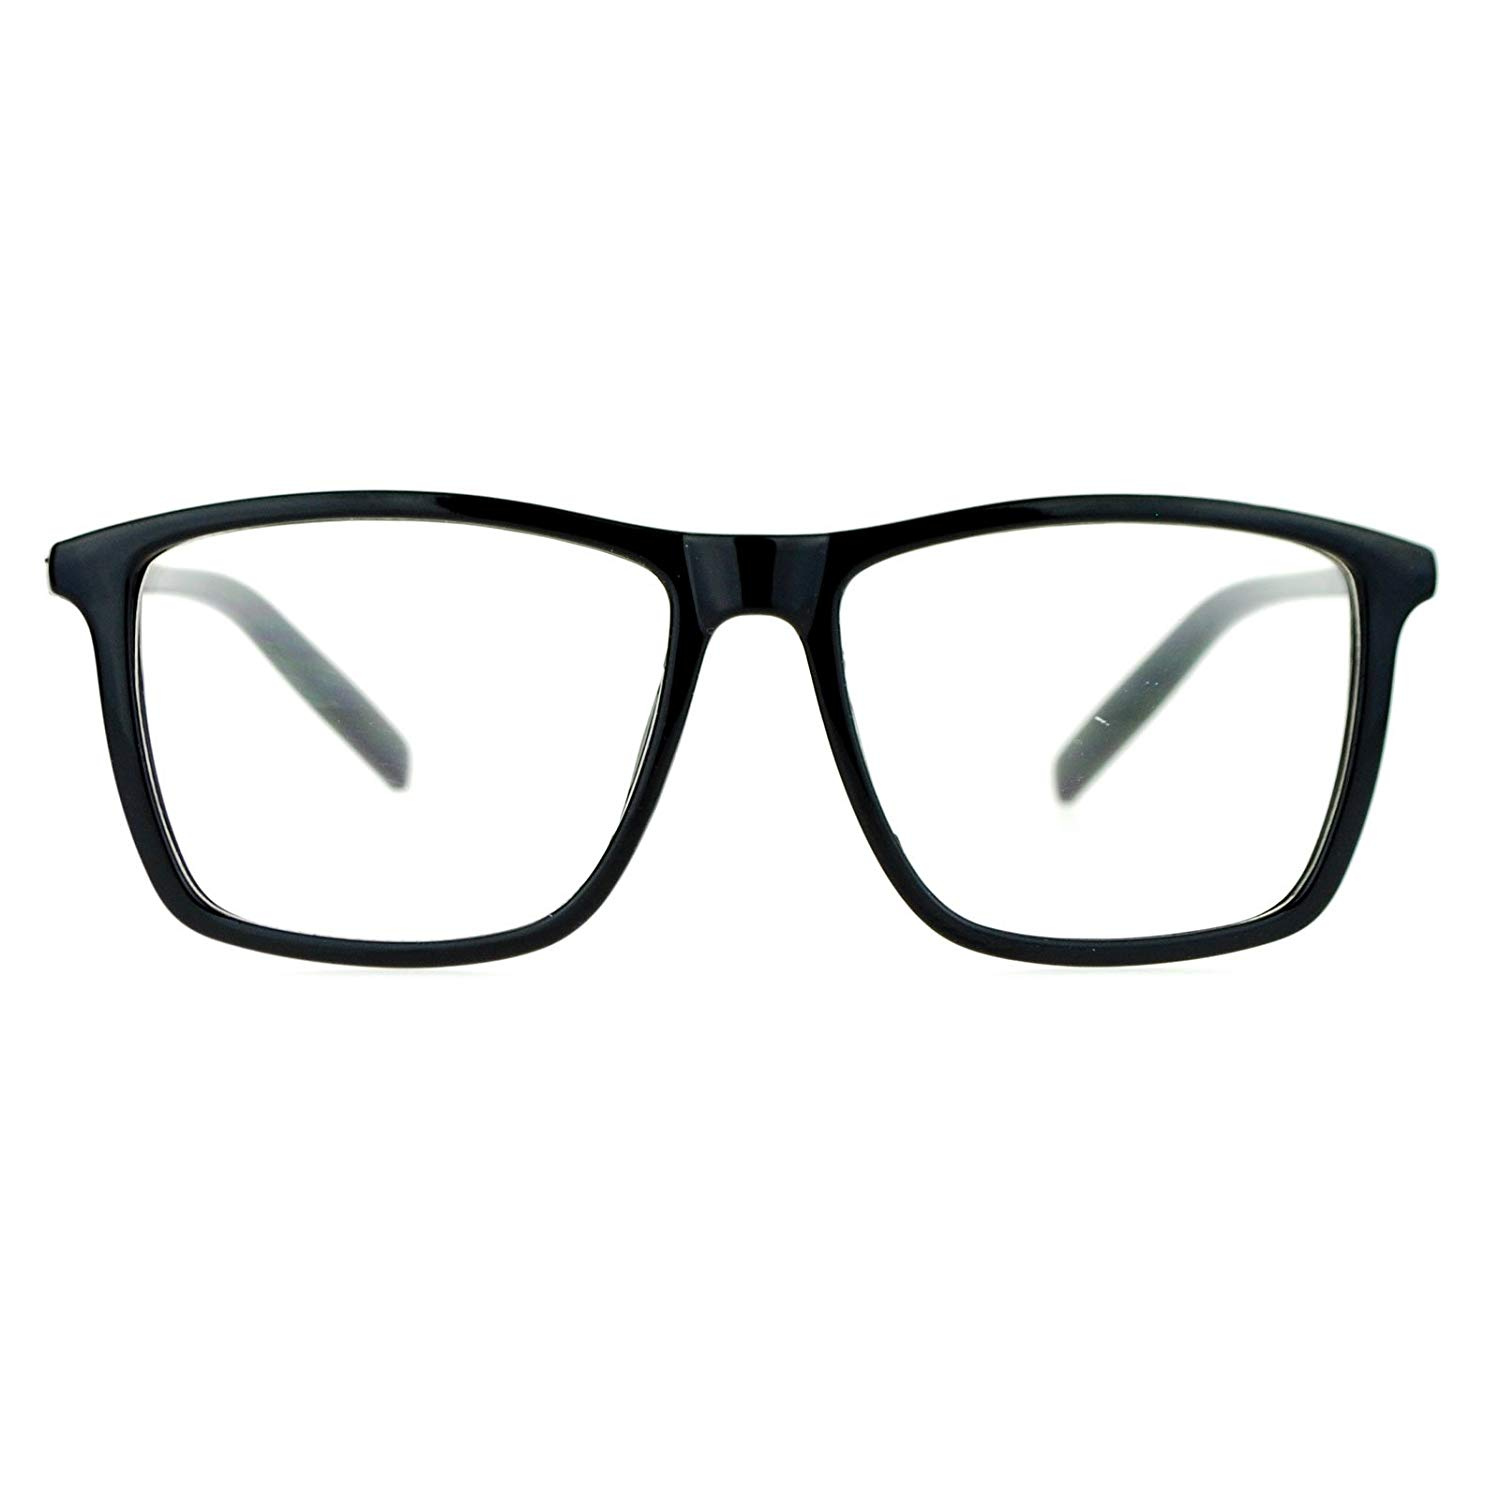 94d72edf4d Get Quotations · SA106 Black Large Thin Plastic Horn Rim Clear Lens Eye  Glasses Frame